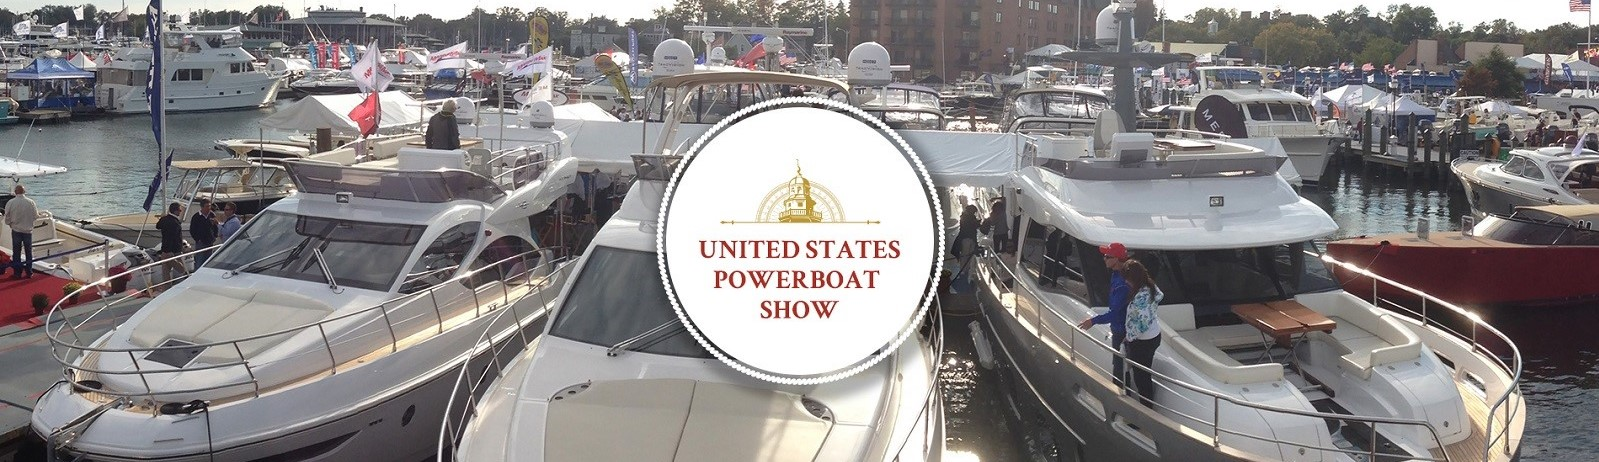 2018 United States Powerboat Show in Annapolis